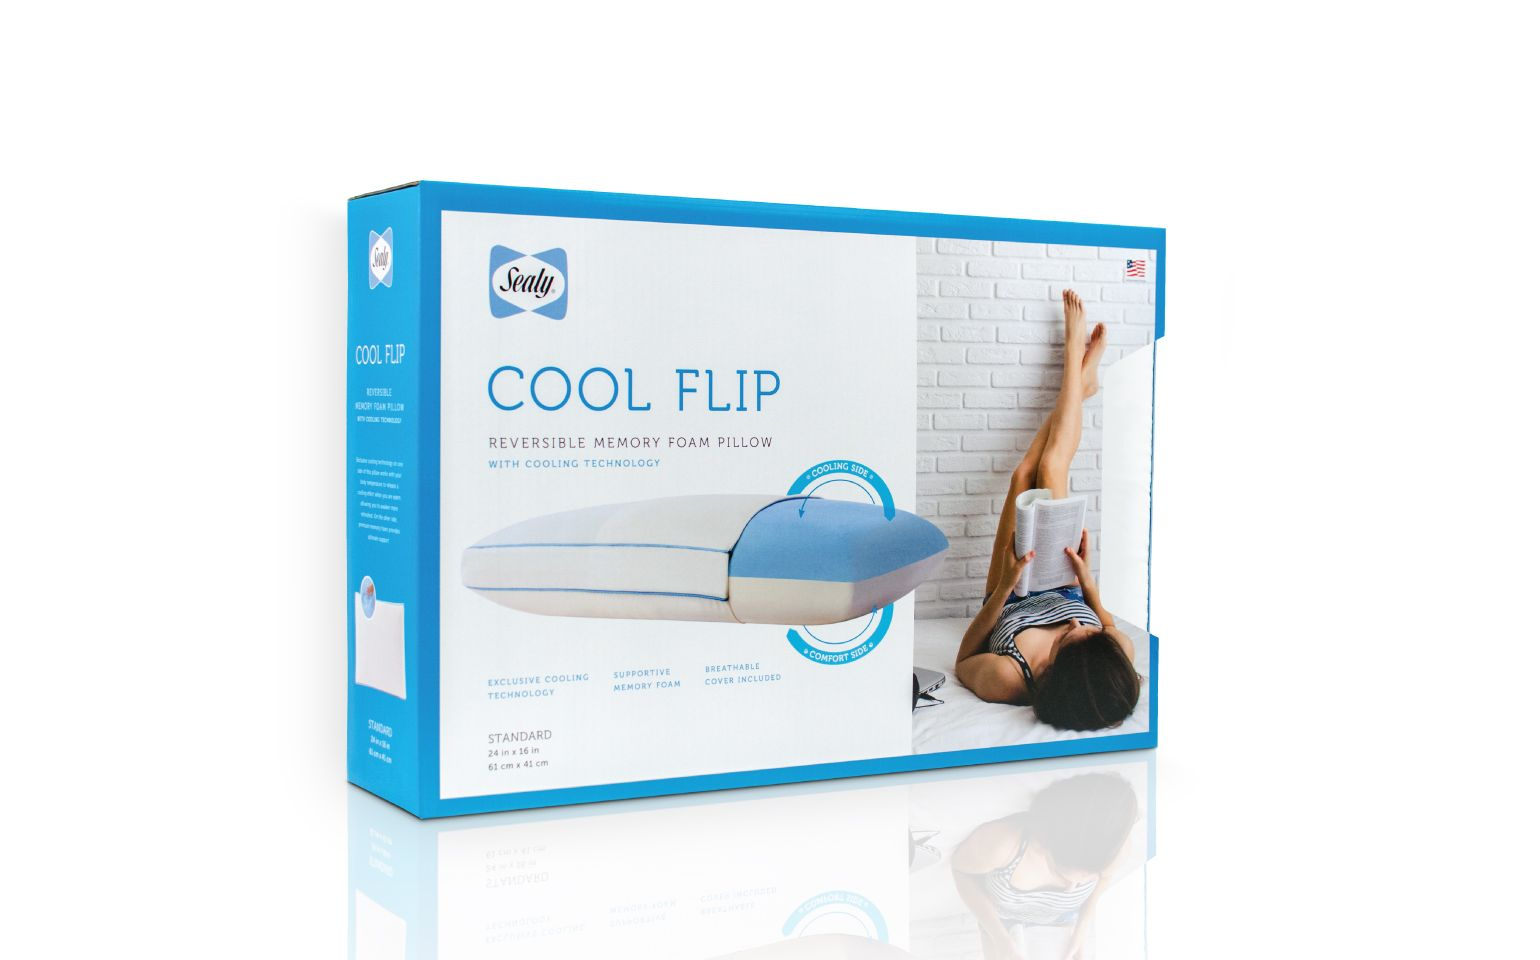 Sealy Cool Flip Pillow Packaging Cool Stuff Sealy Memory Foam Pillow